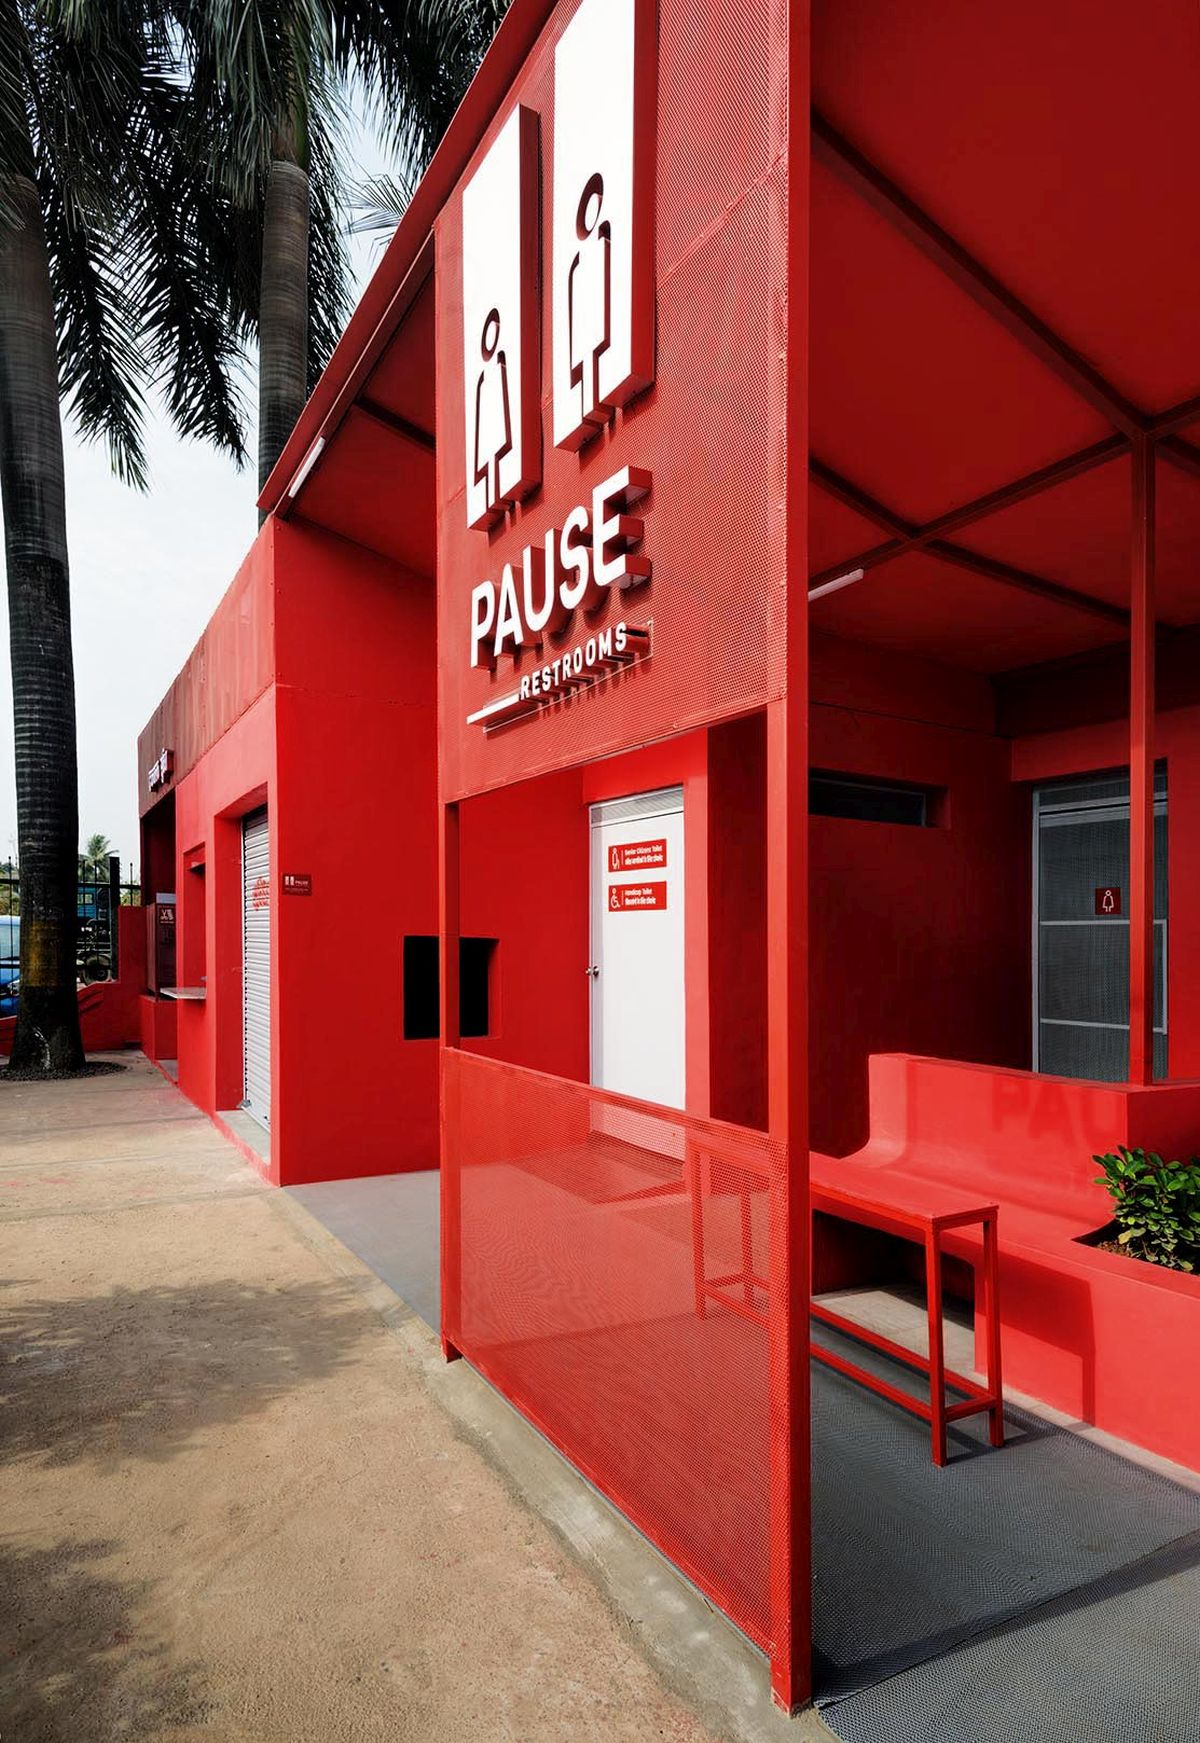 Pause - Restrooms, at Bombay-Goa Highway, by RC Architects 35